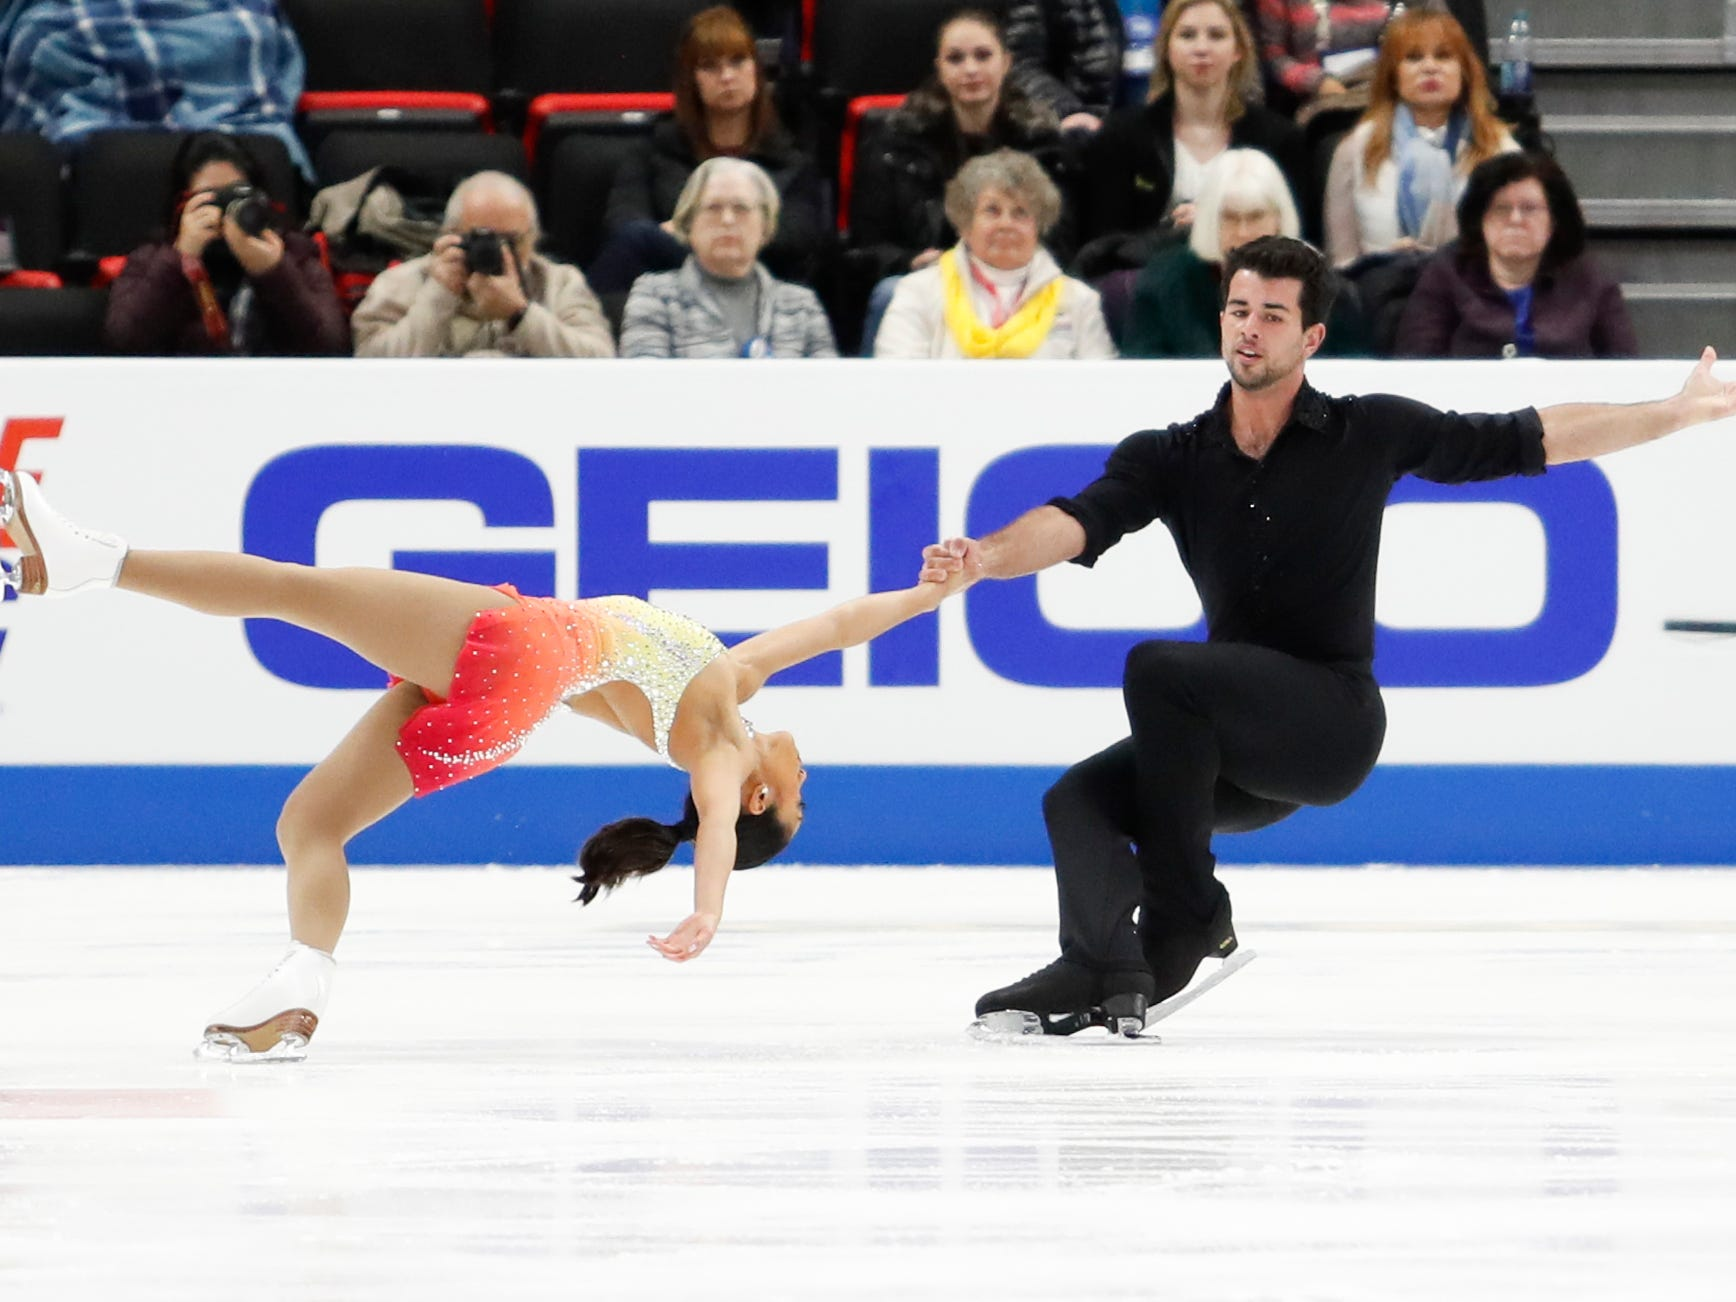 Jessica Calalang and Brian Johnson perform in the pairs short program.